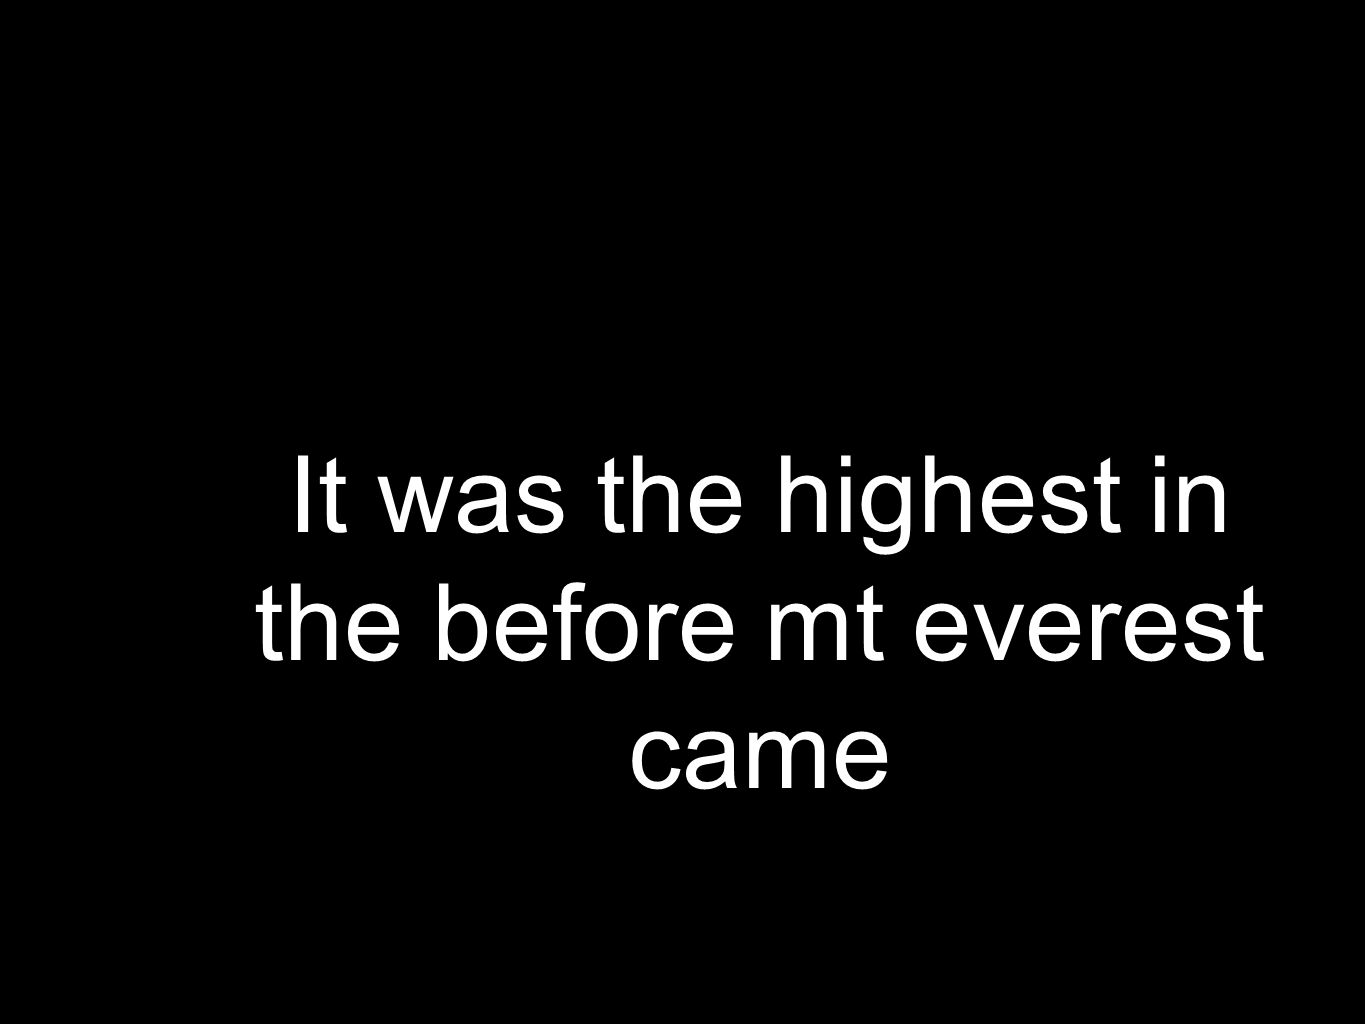 It was the highest in the before mt everest came